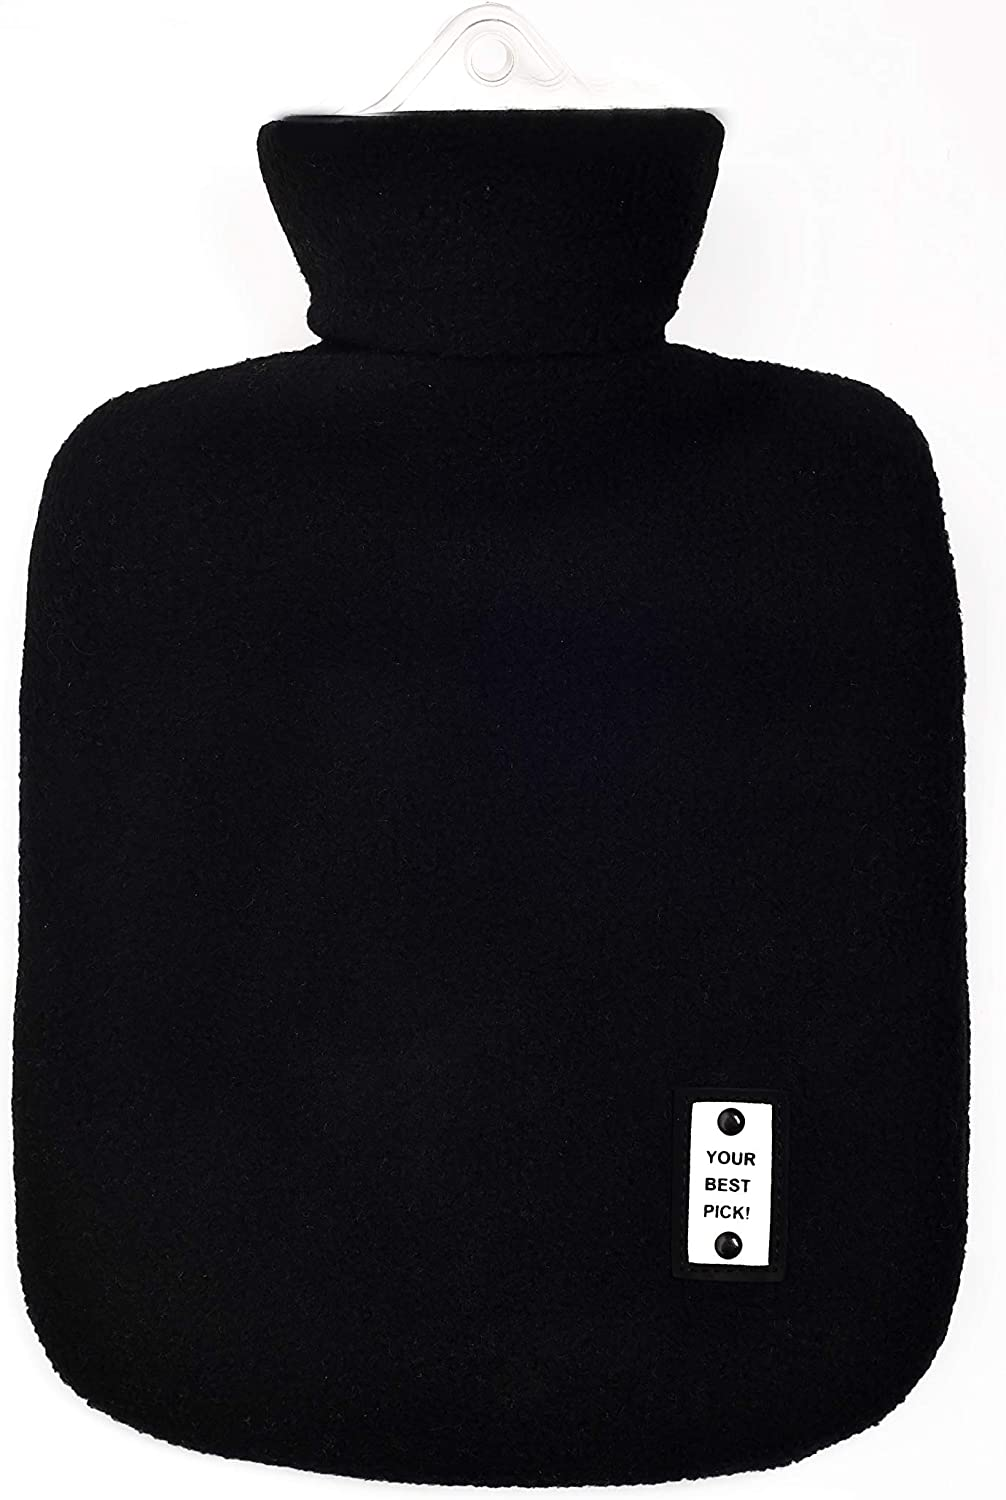 L&L Hot Water Bottle with Fleece 1 Liter hot Water Bag Great for Pain Relief, Hot Compress and Heat Therapy (Black)